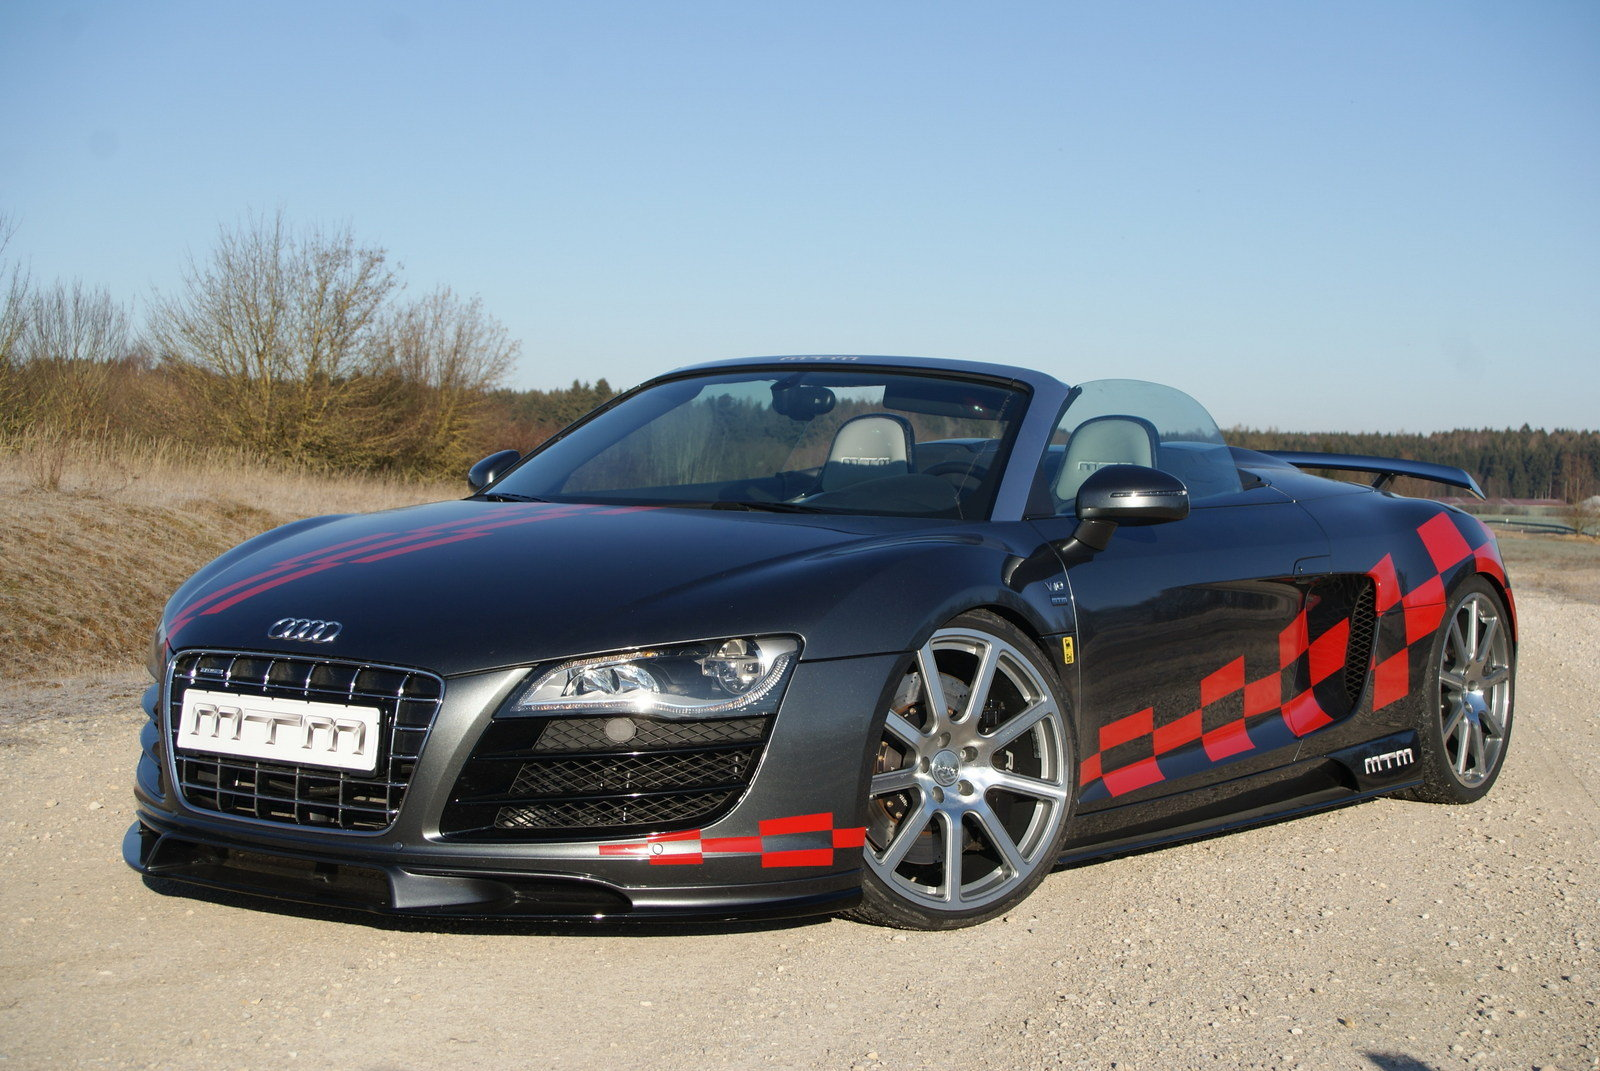 2013 Audi R8 V10 Quattro By MTM Review - Top Speed